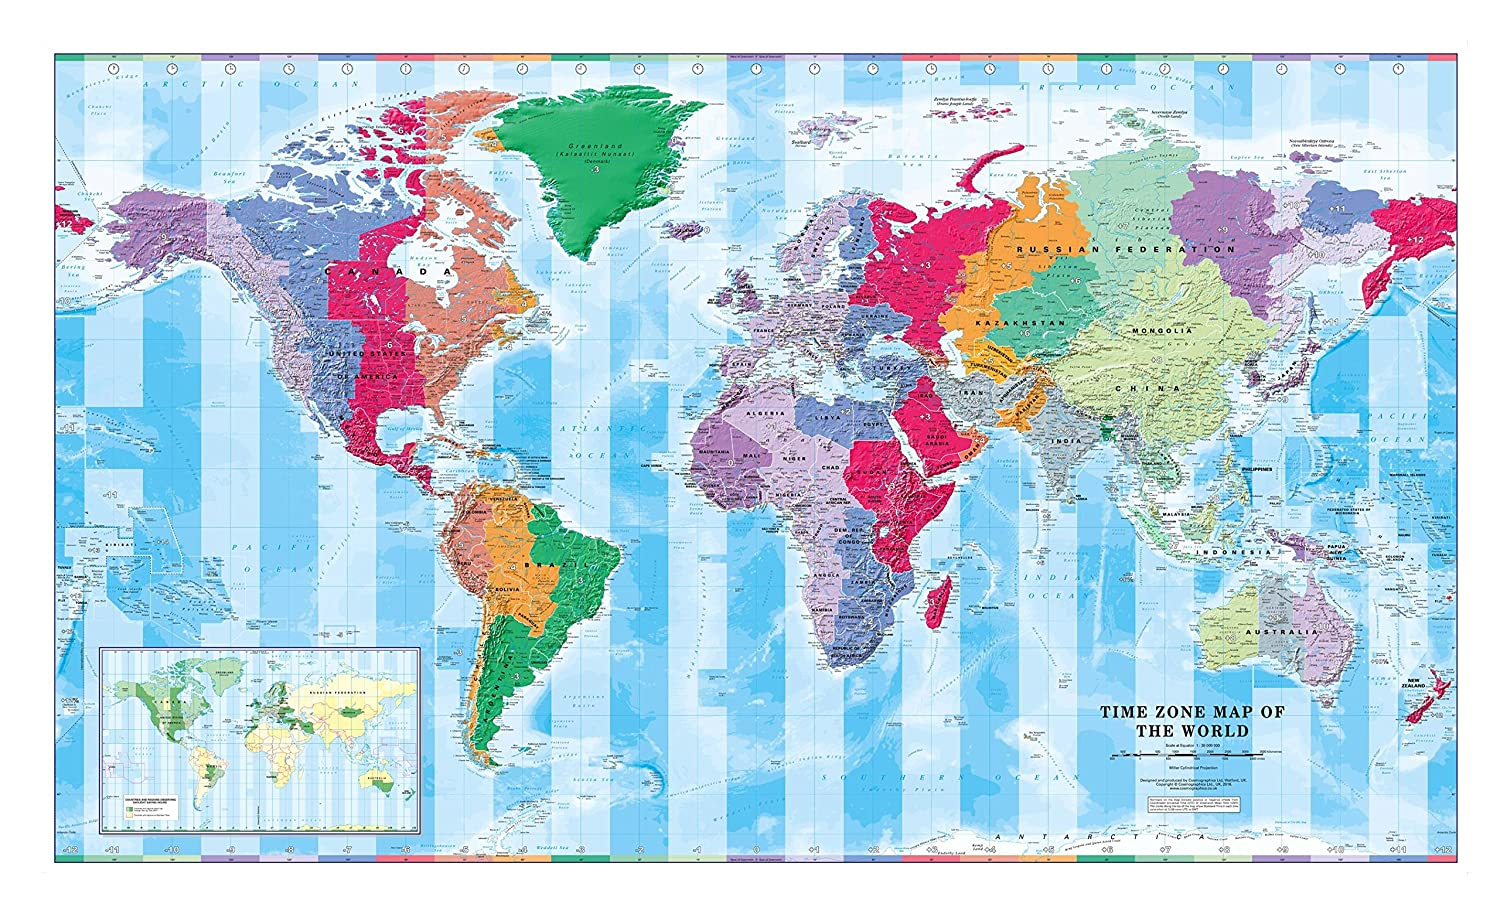 Amazon.com : Time Zone Wall Map of The World - Large - 56.25 ...